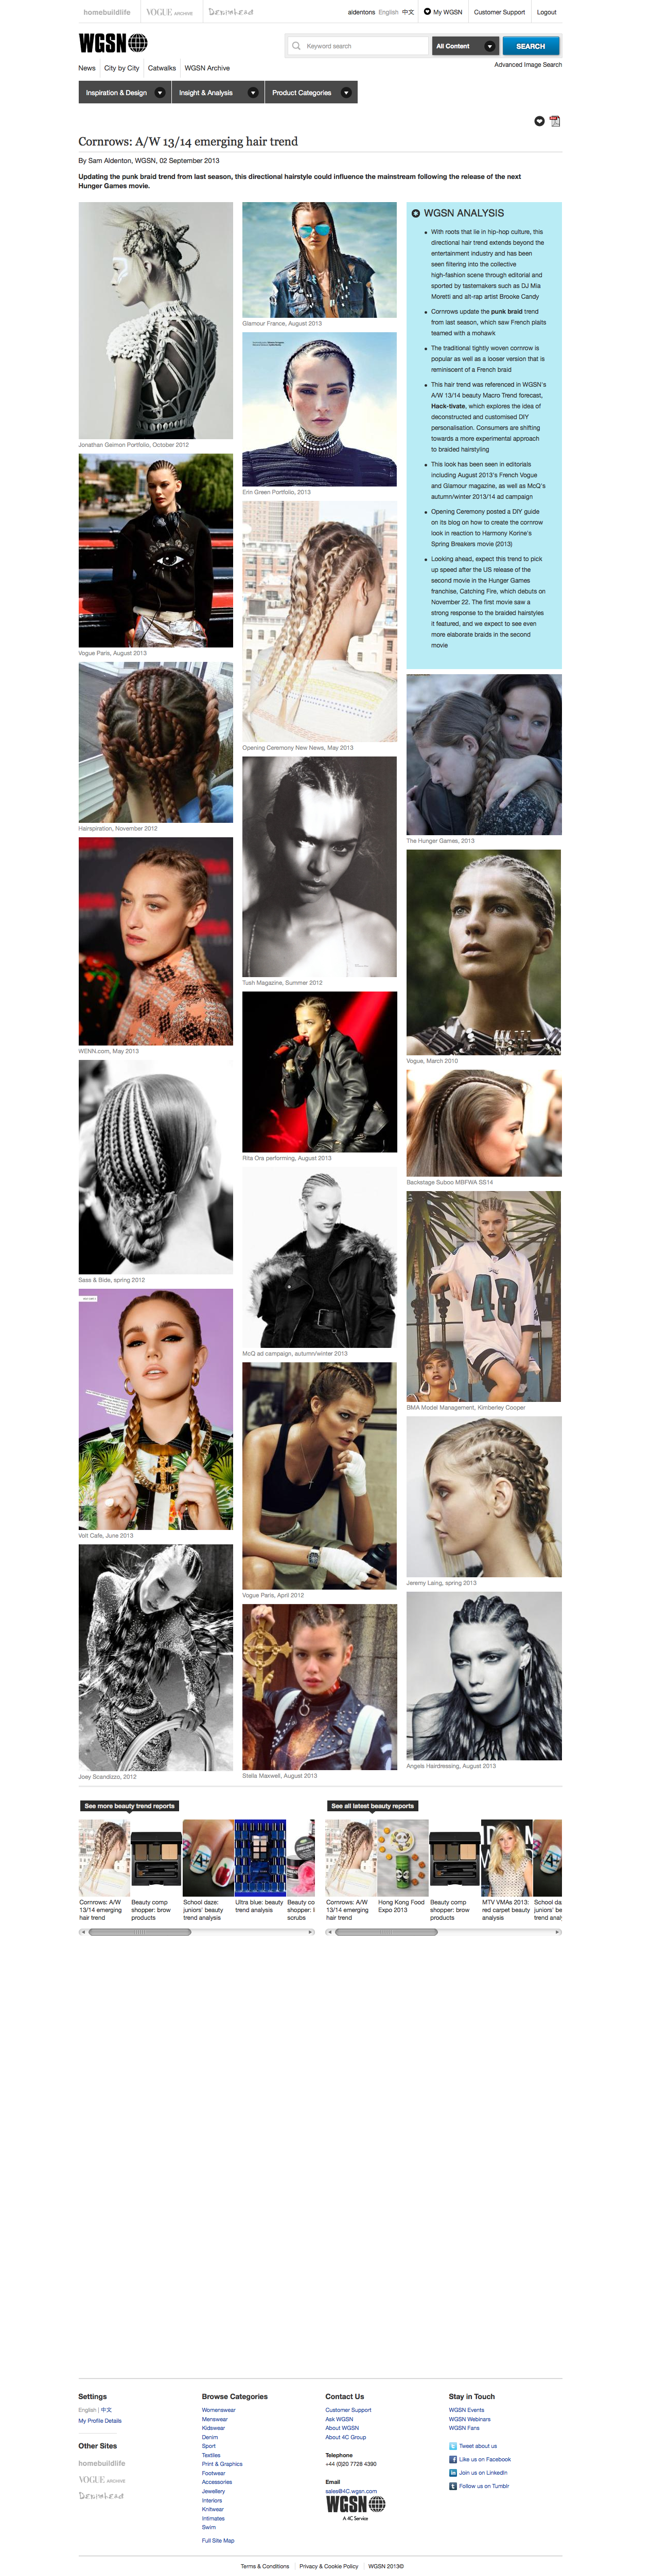 Cornrows: A:W 13:14 emerging hair trend 2013-09-03 09-36-01